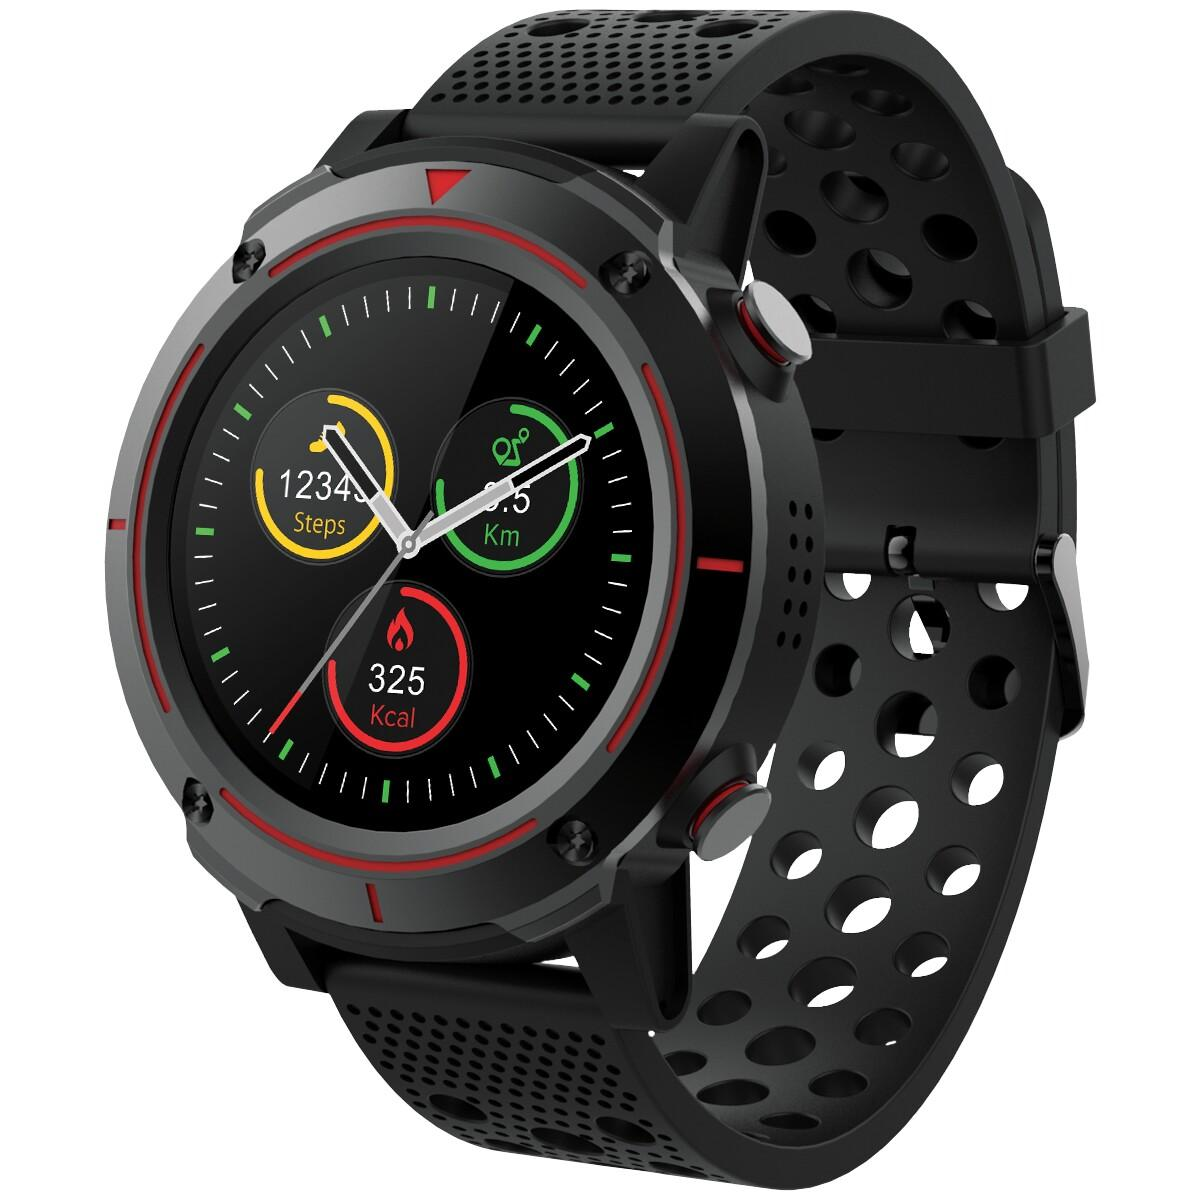 DGTEC Smart Watch for Men